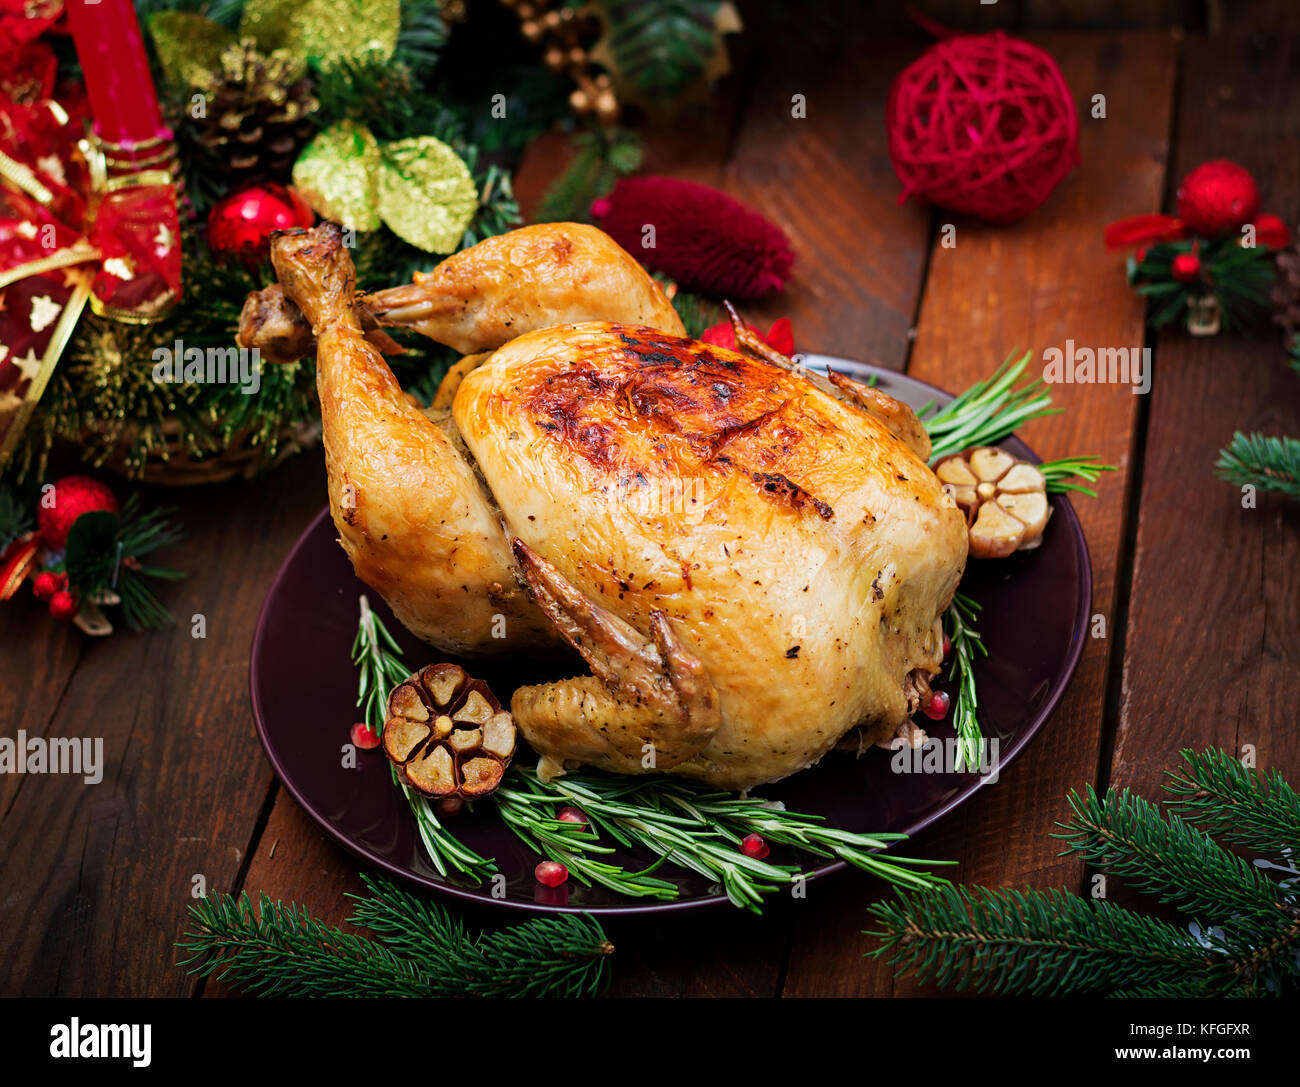 Baked turkey or chicken. The Christmas table is served with a turkey, decorated with bright tinsel and candles. - Stock Image